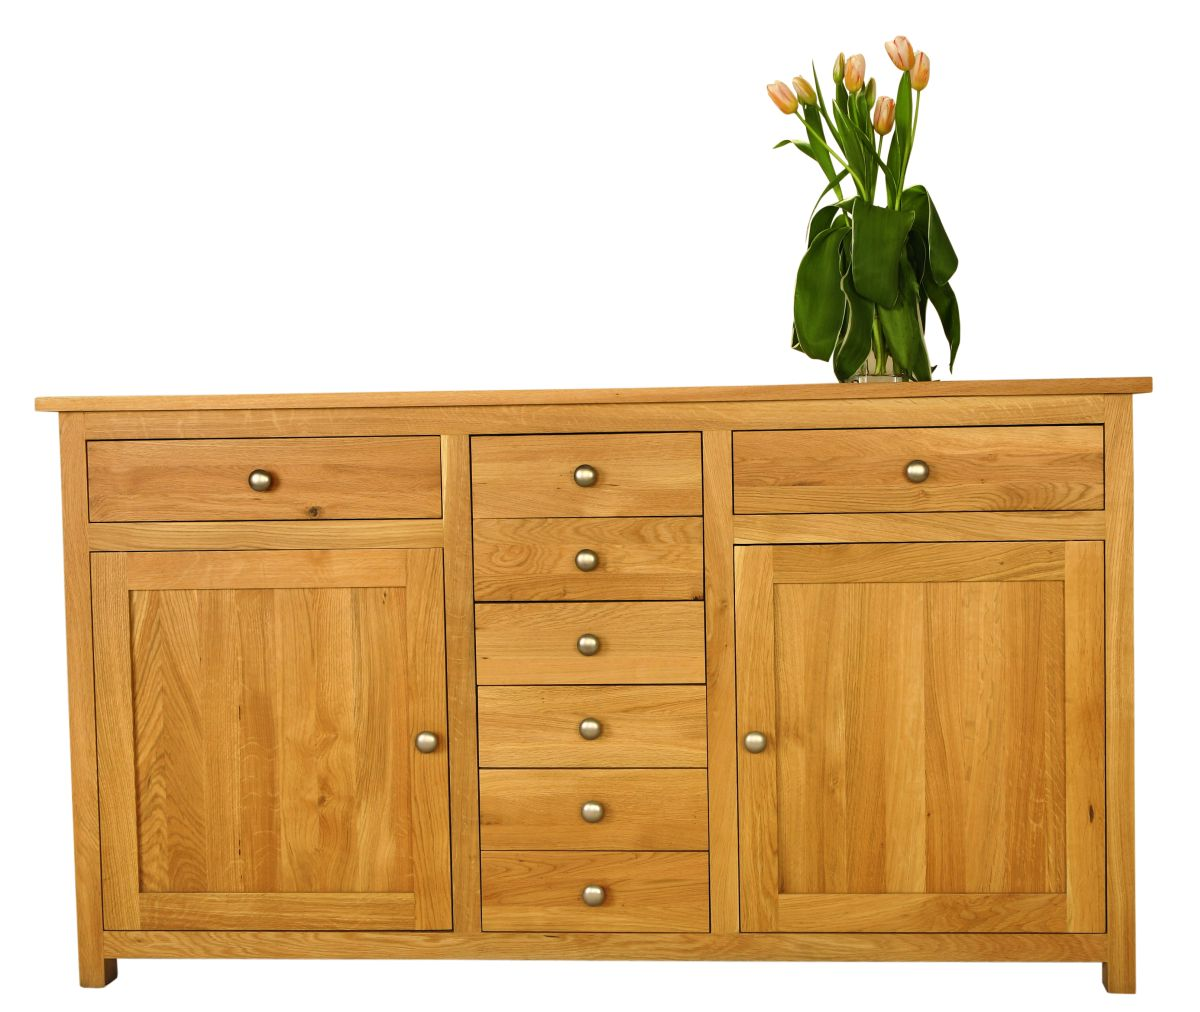 Solid Oak Sideboard, 2 Doors and 8 Drawers